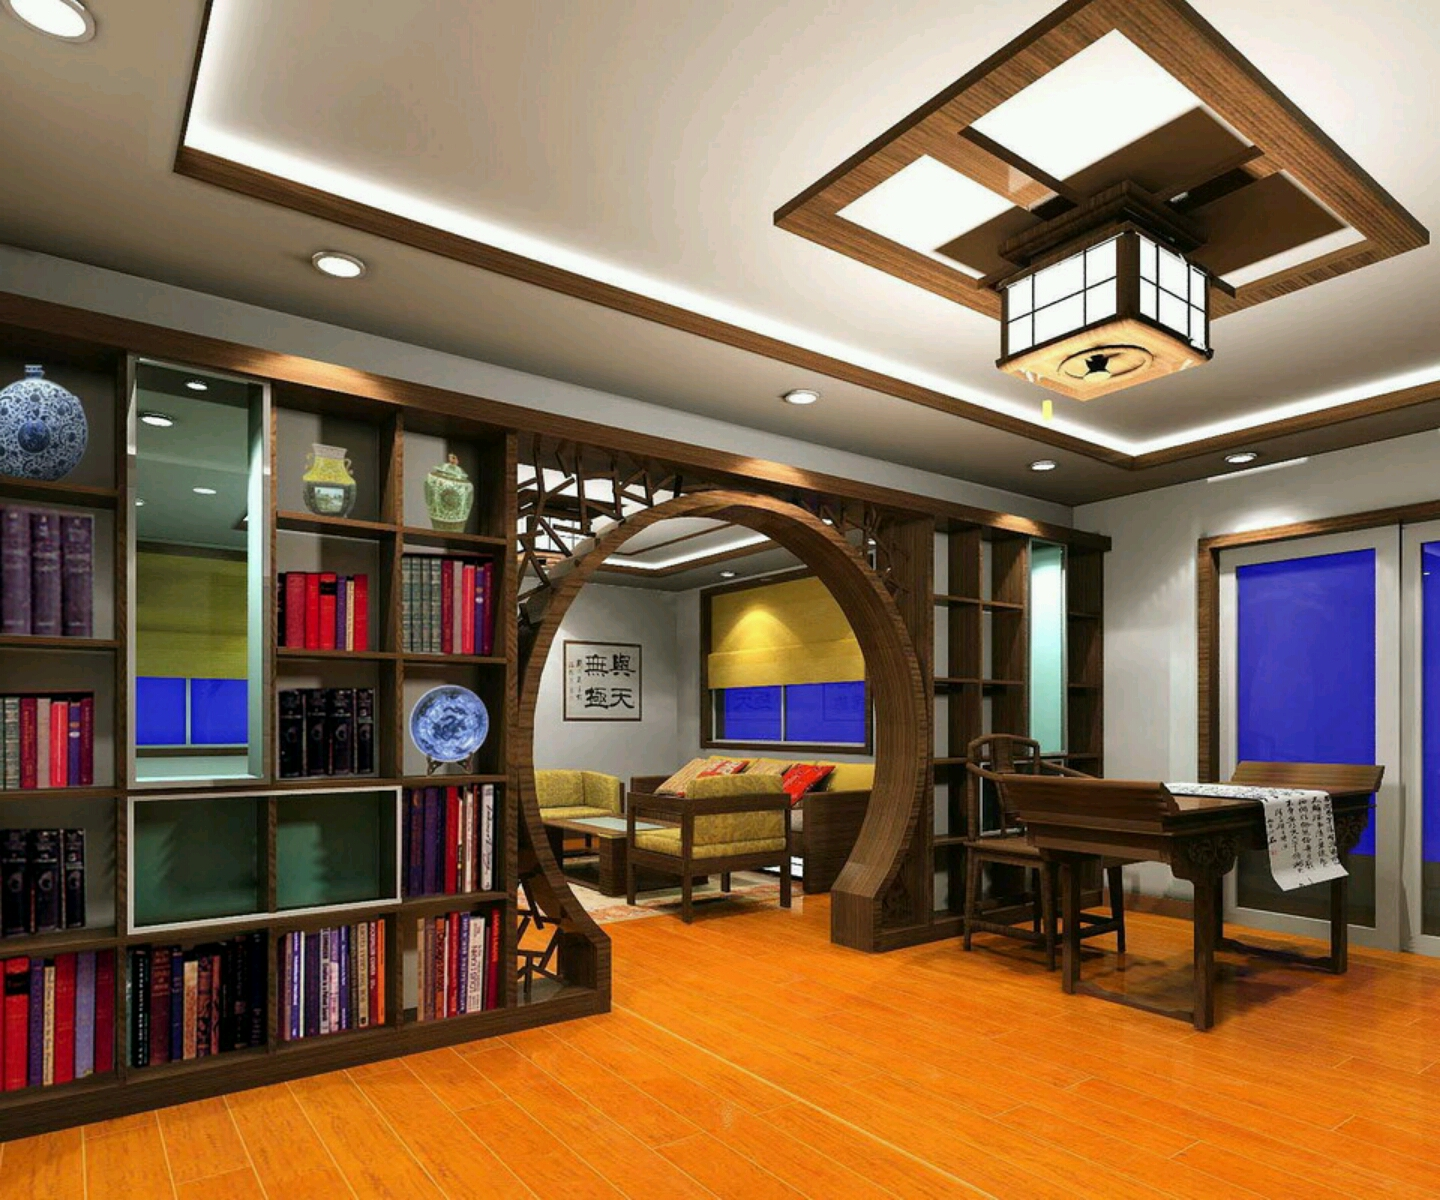 Best Study Room Design : Modern Furniture: Modern study room furnitures designs ideas.